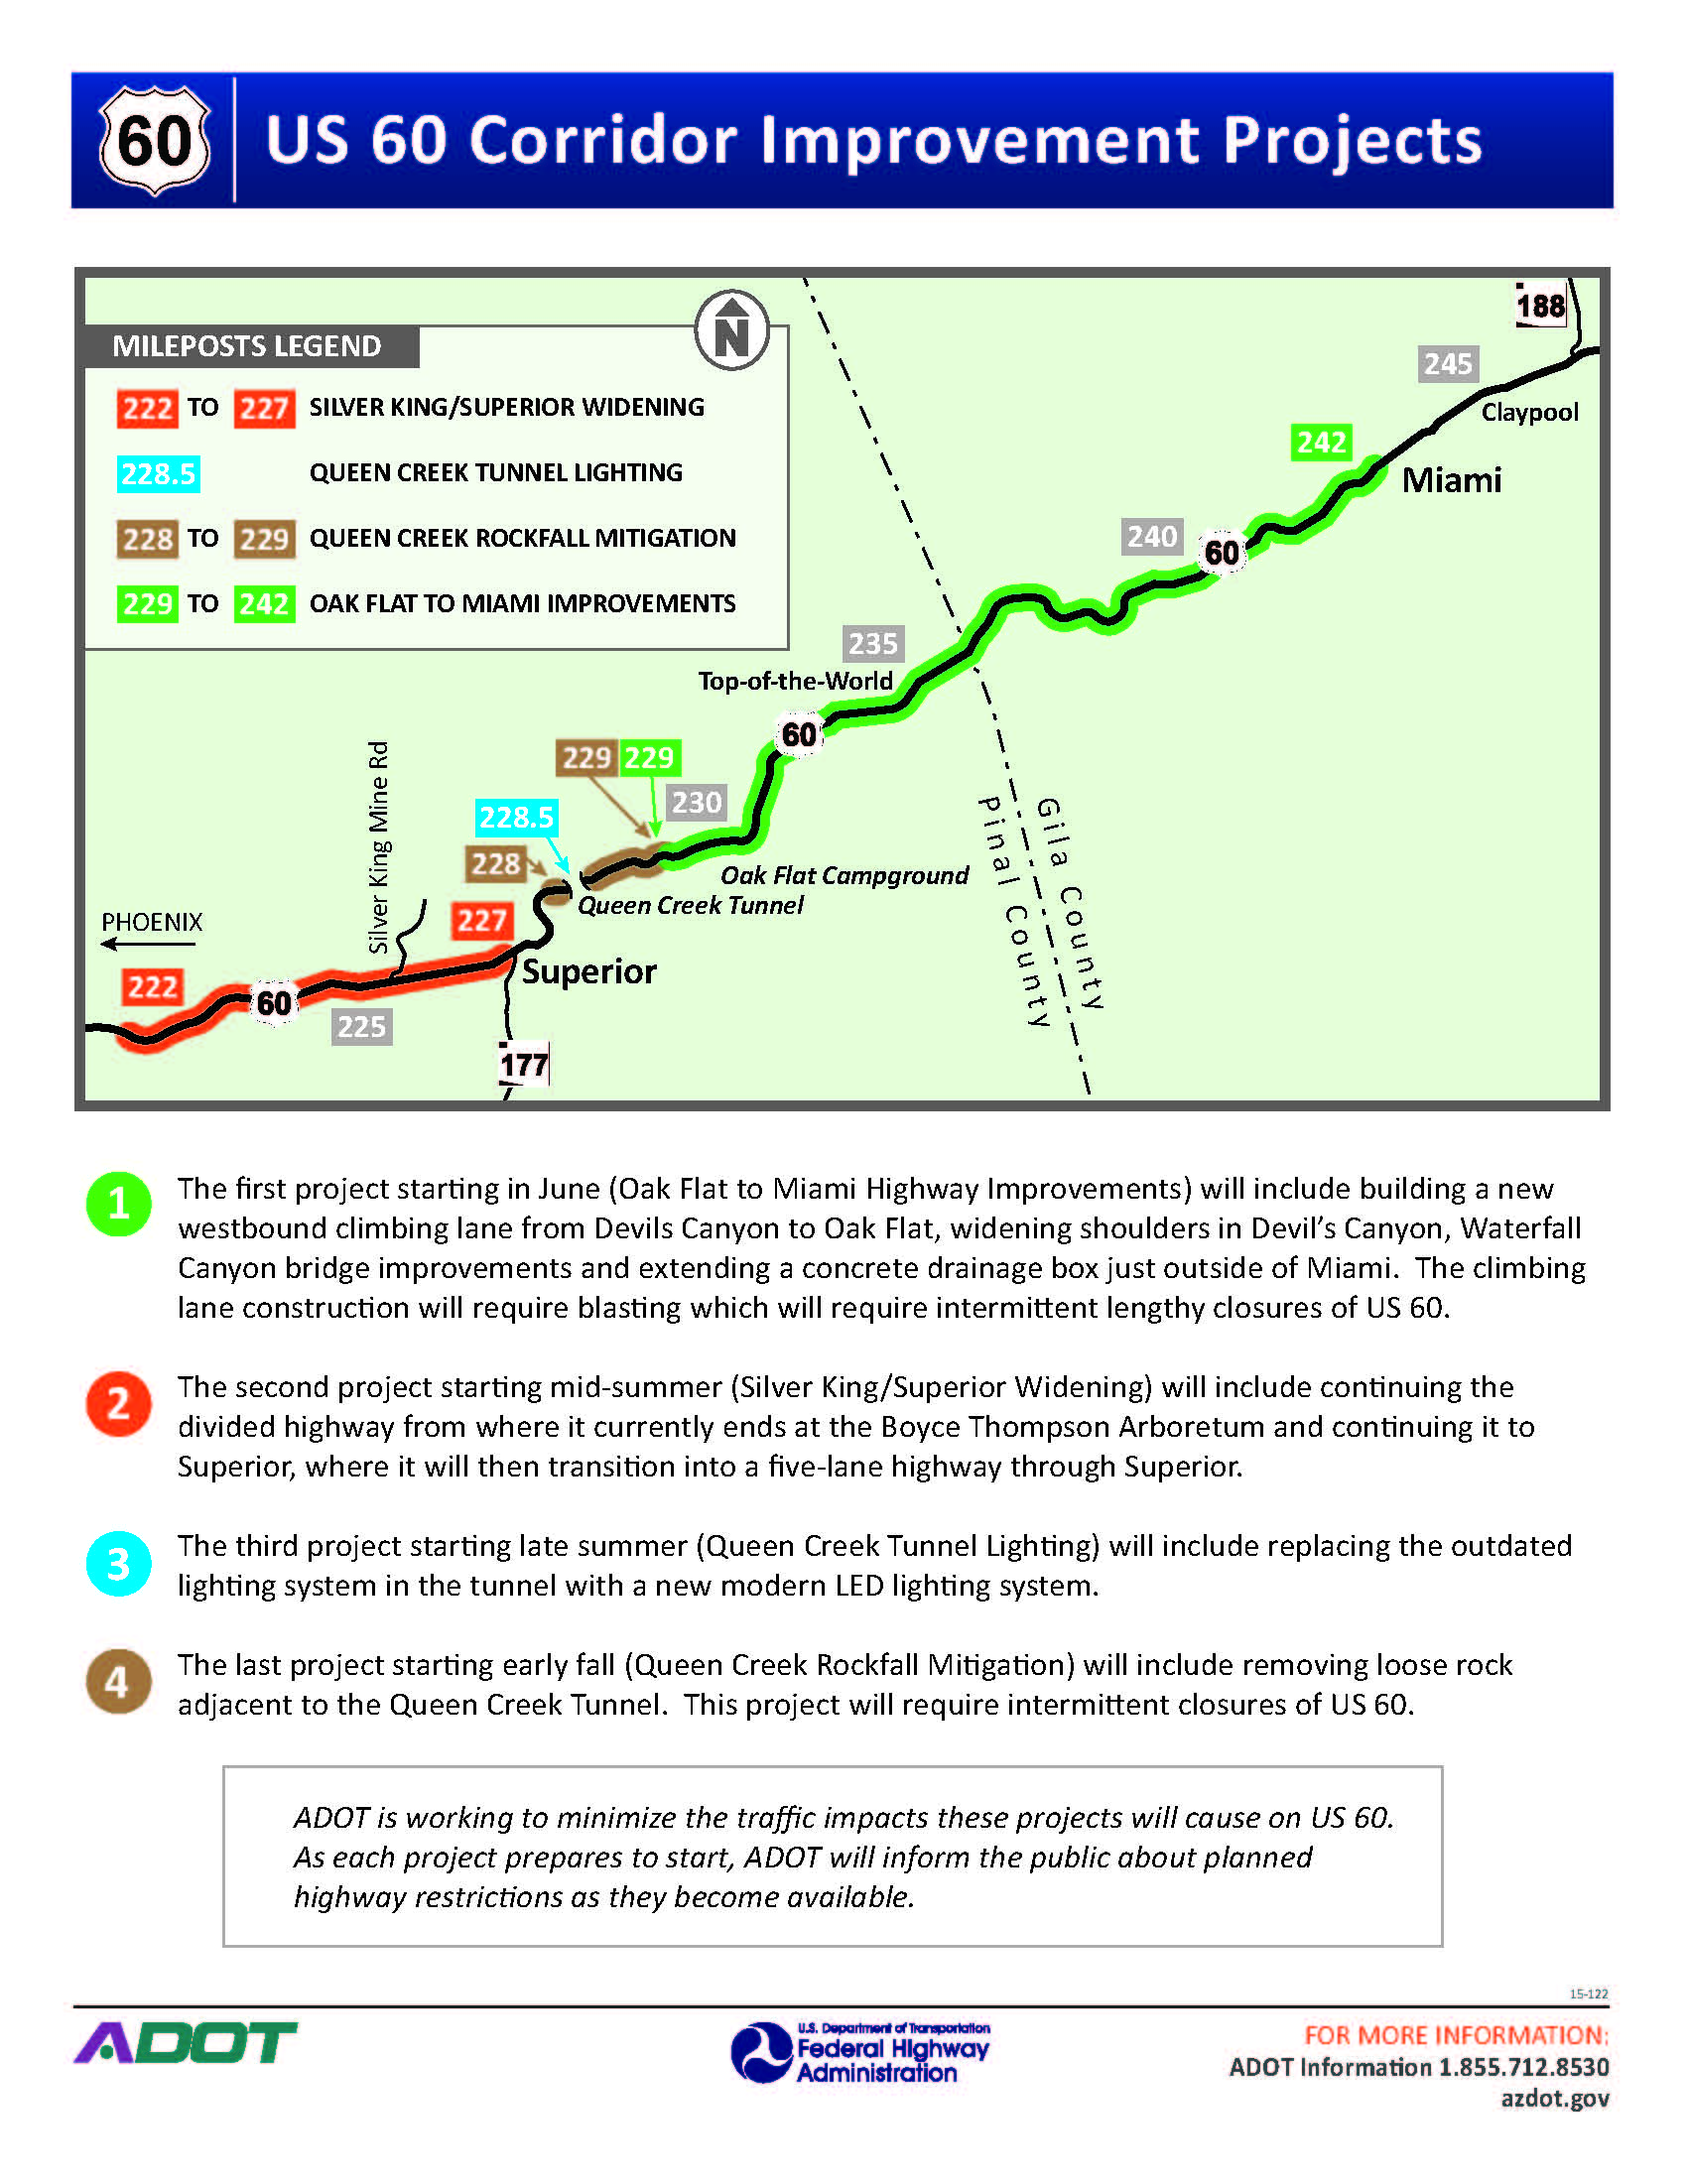 US 60 Corridor Improvement Projects Map and Overview